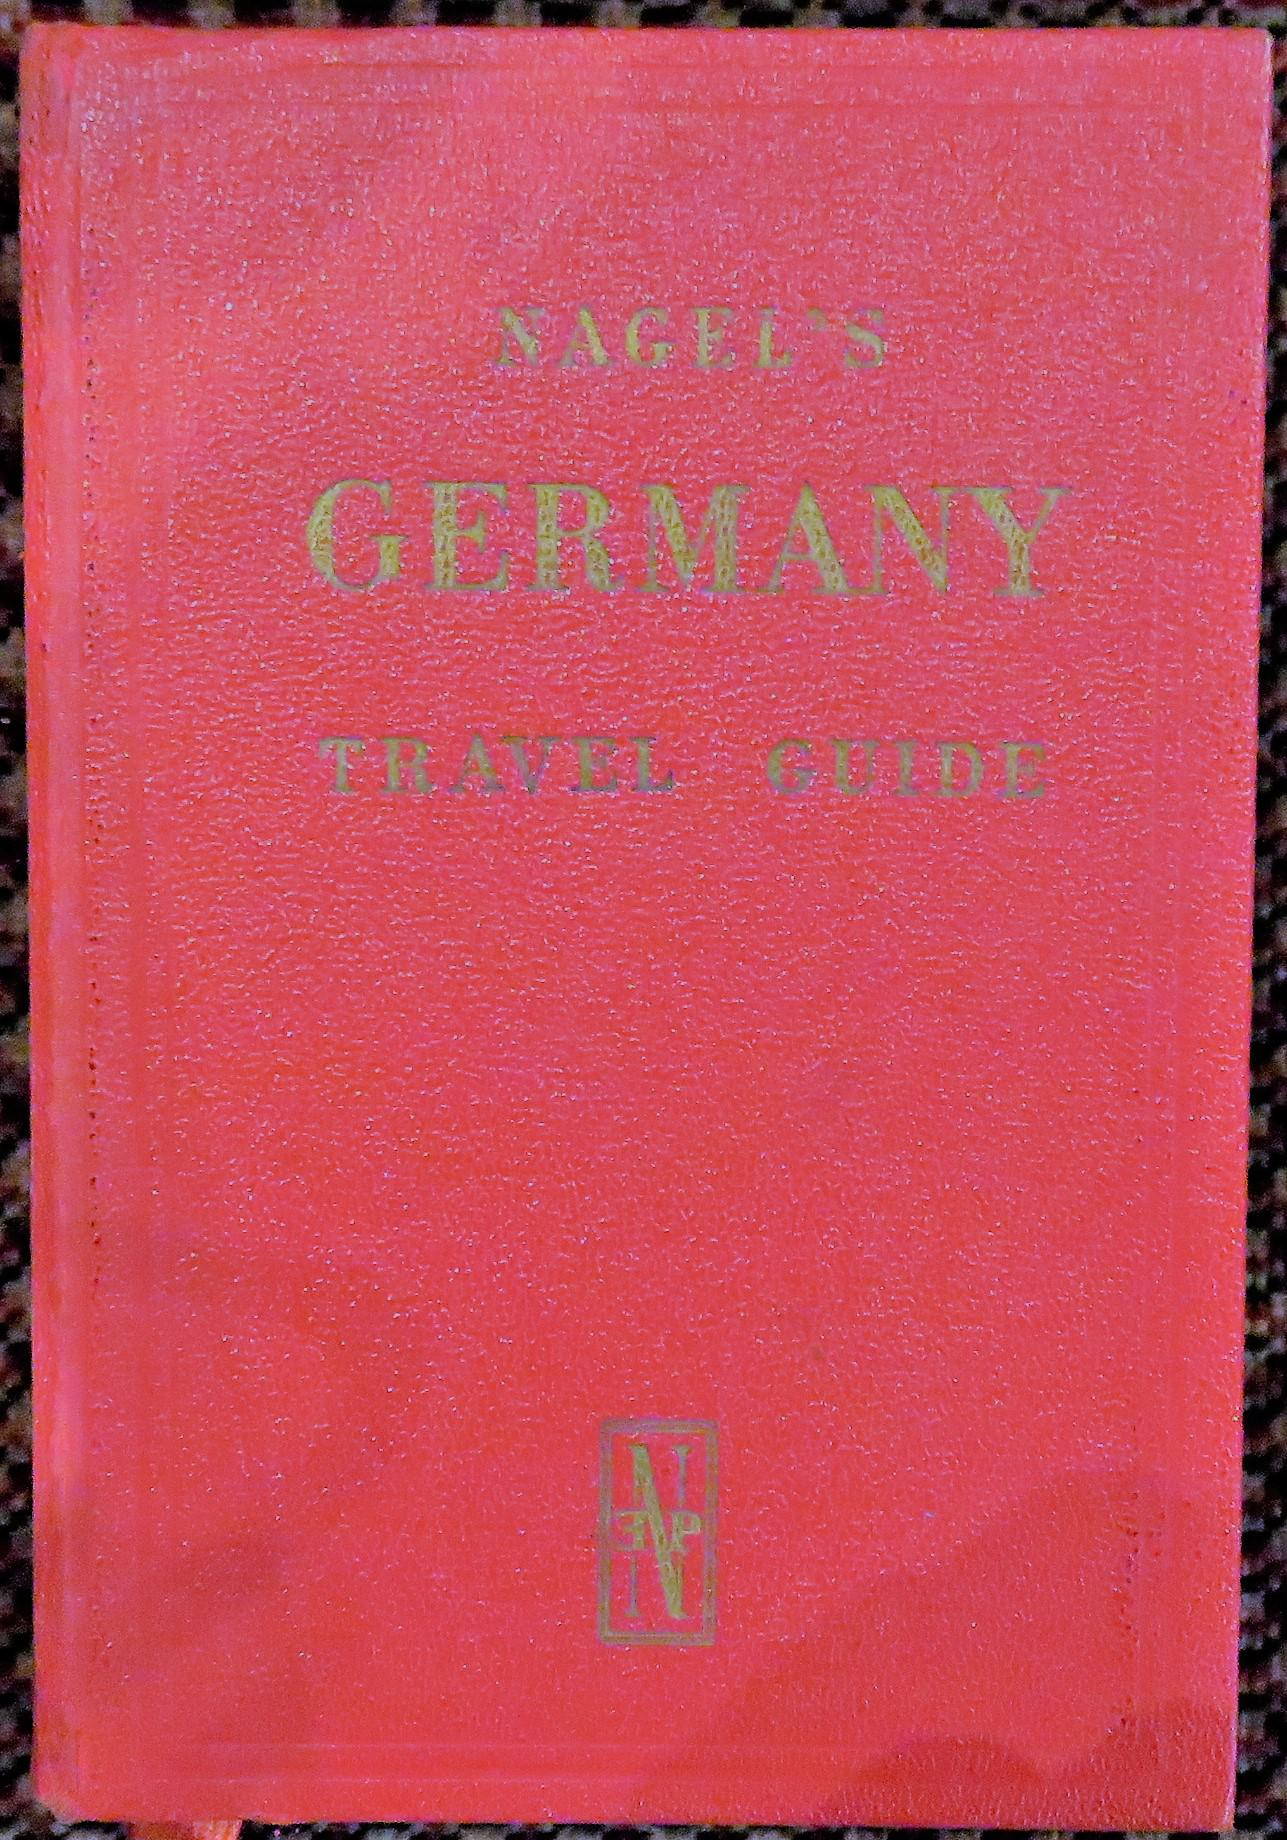 Nagel's Germany Travel Guide